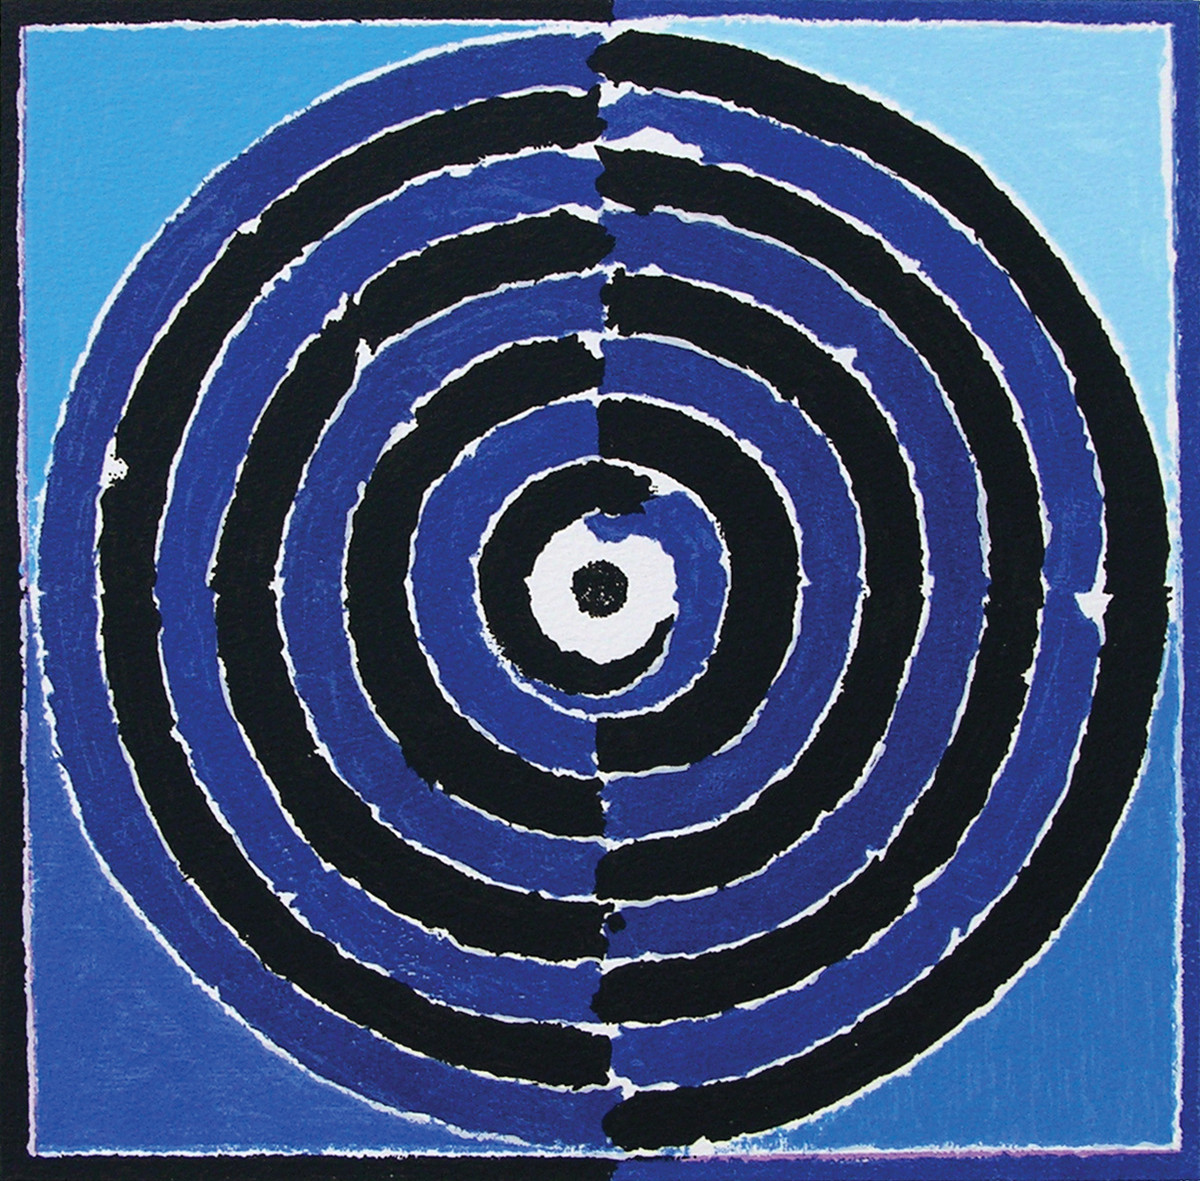 Kundalini by S H Raza, Geometrical Serigraph, Serigraph on Paper, Blue color